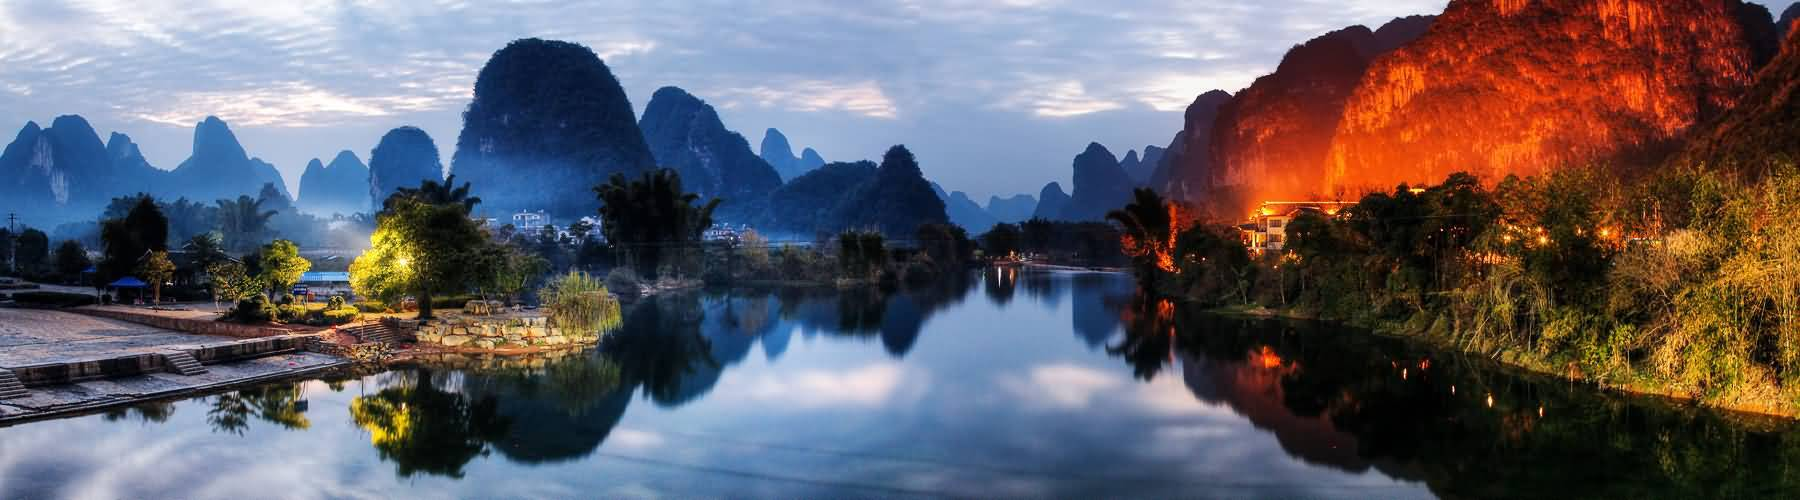 Scenery in Guilin